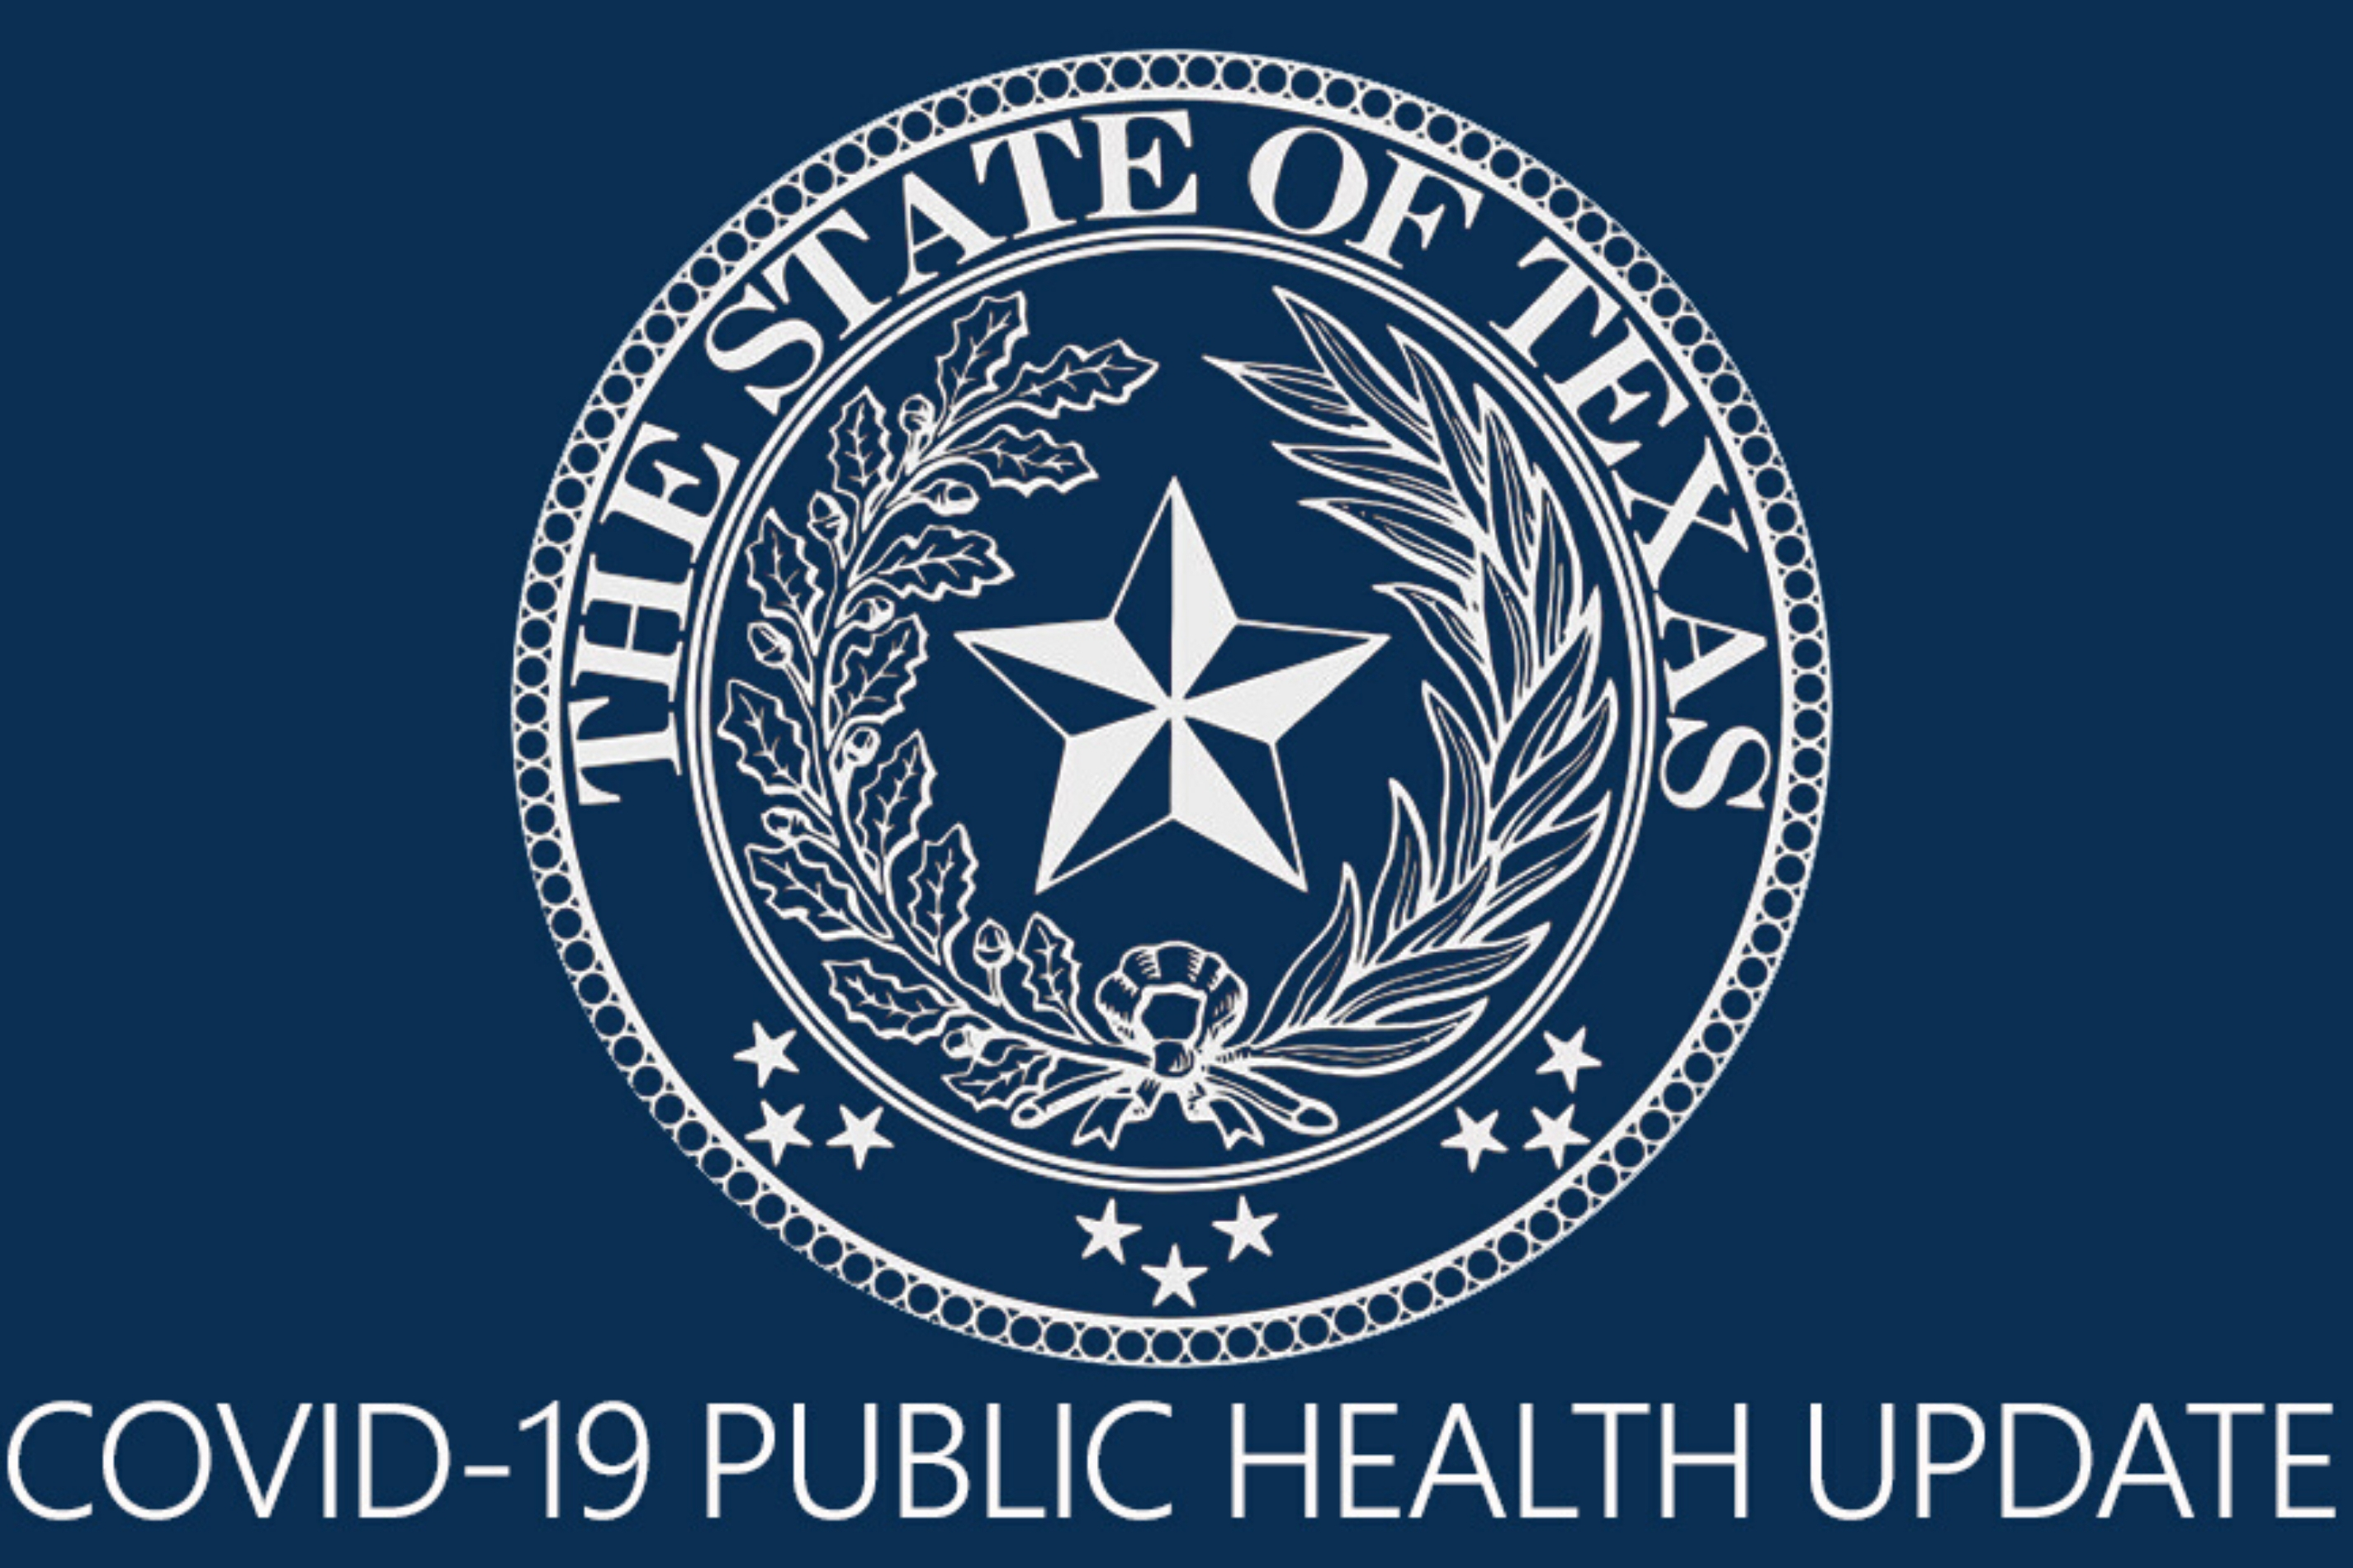 Gov. Abbott Establishes Statewide Face Covering Requirement, Issues Proclamation to Limit Gatherings